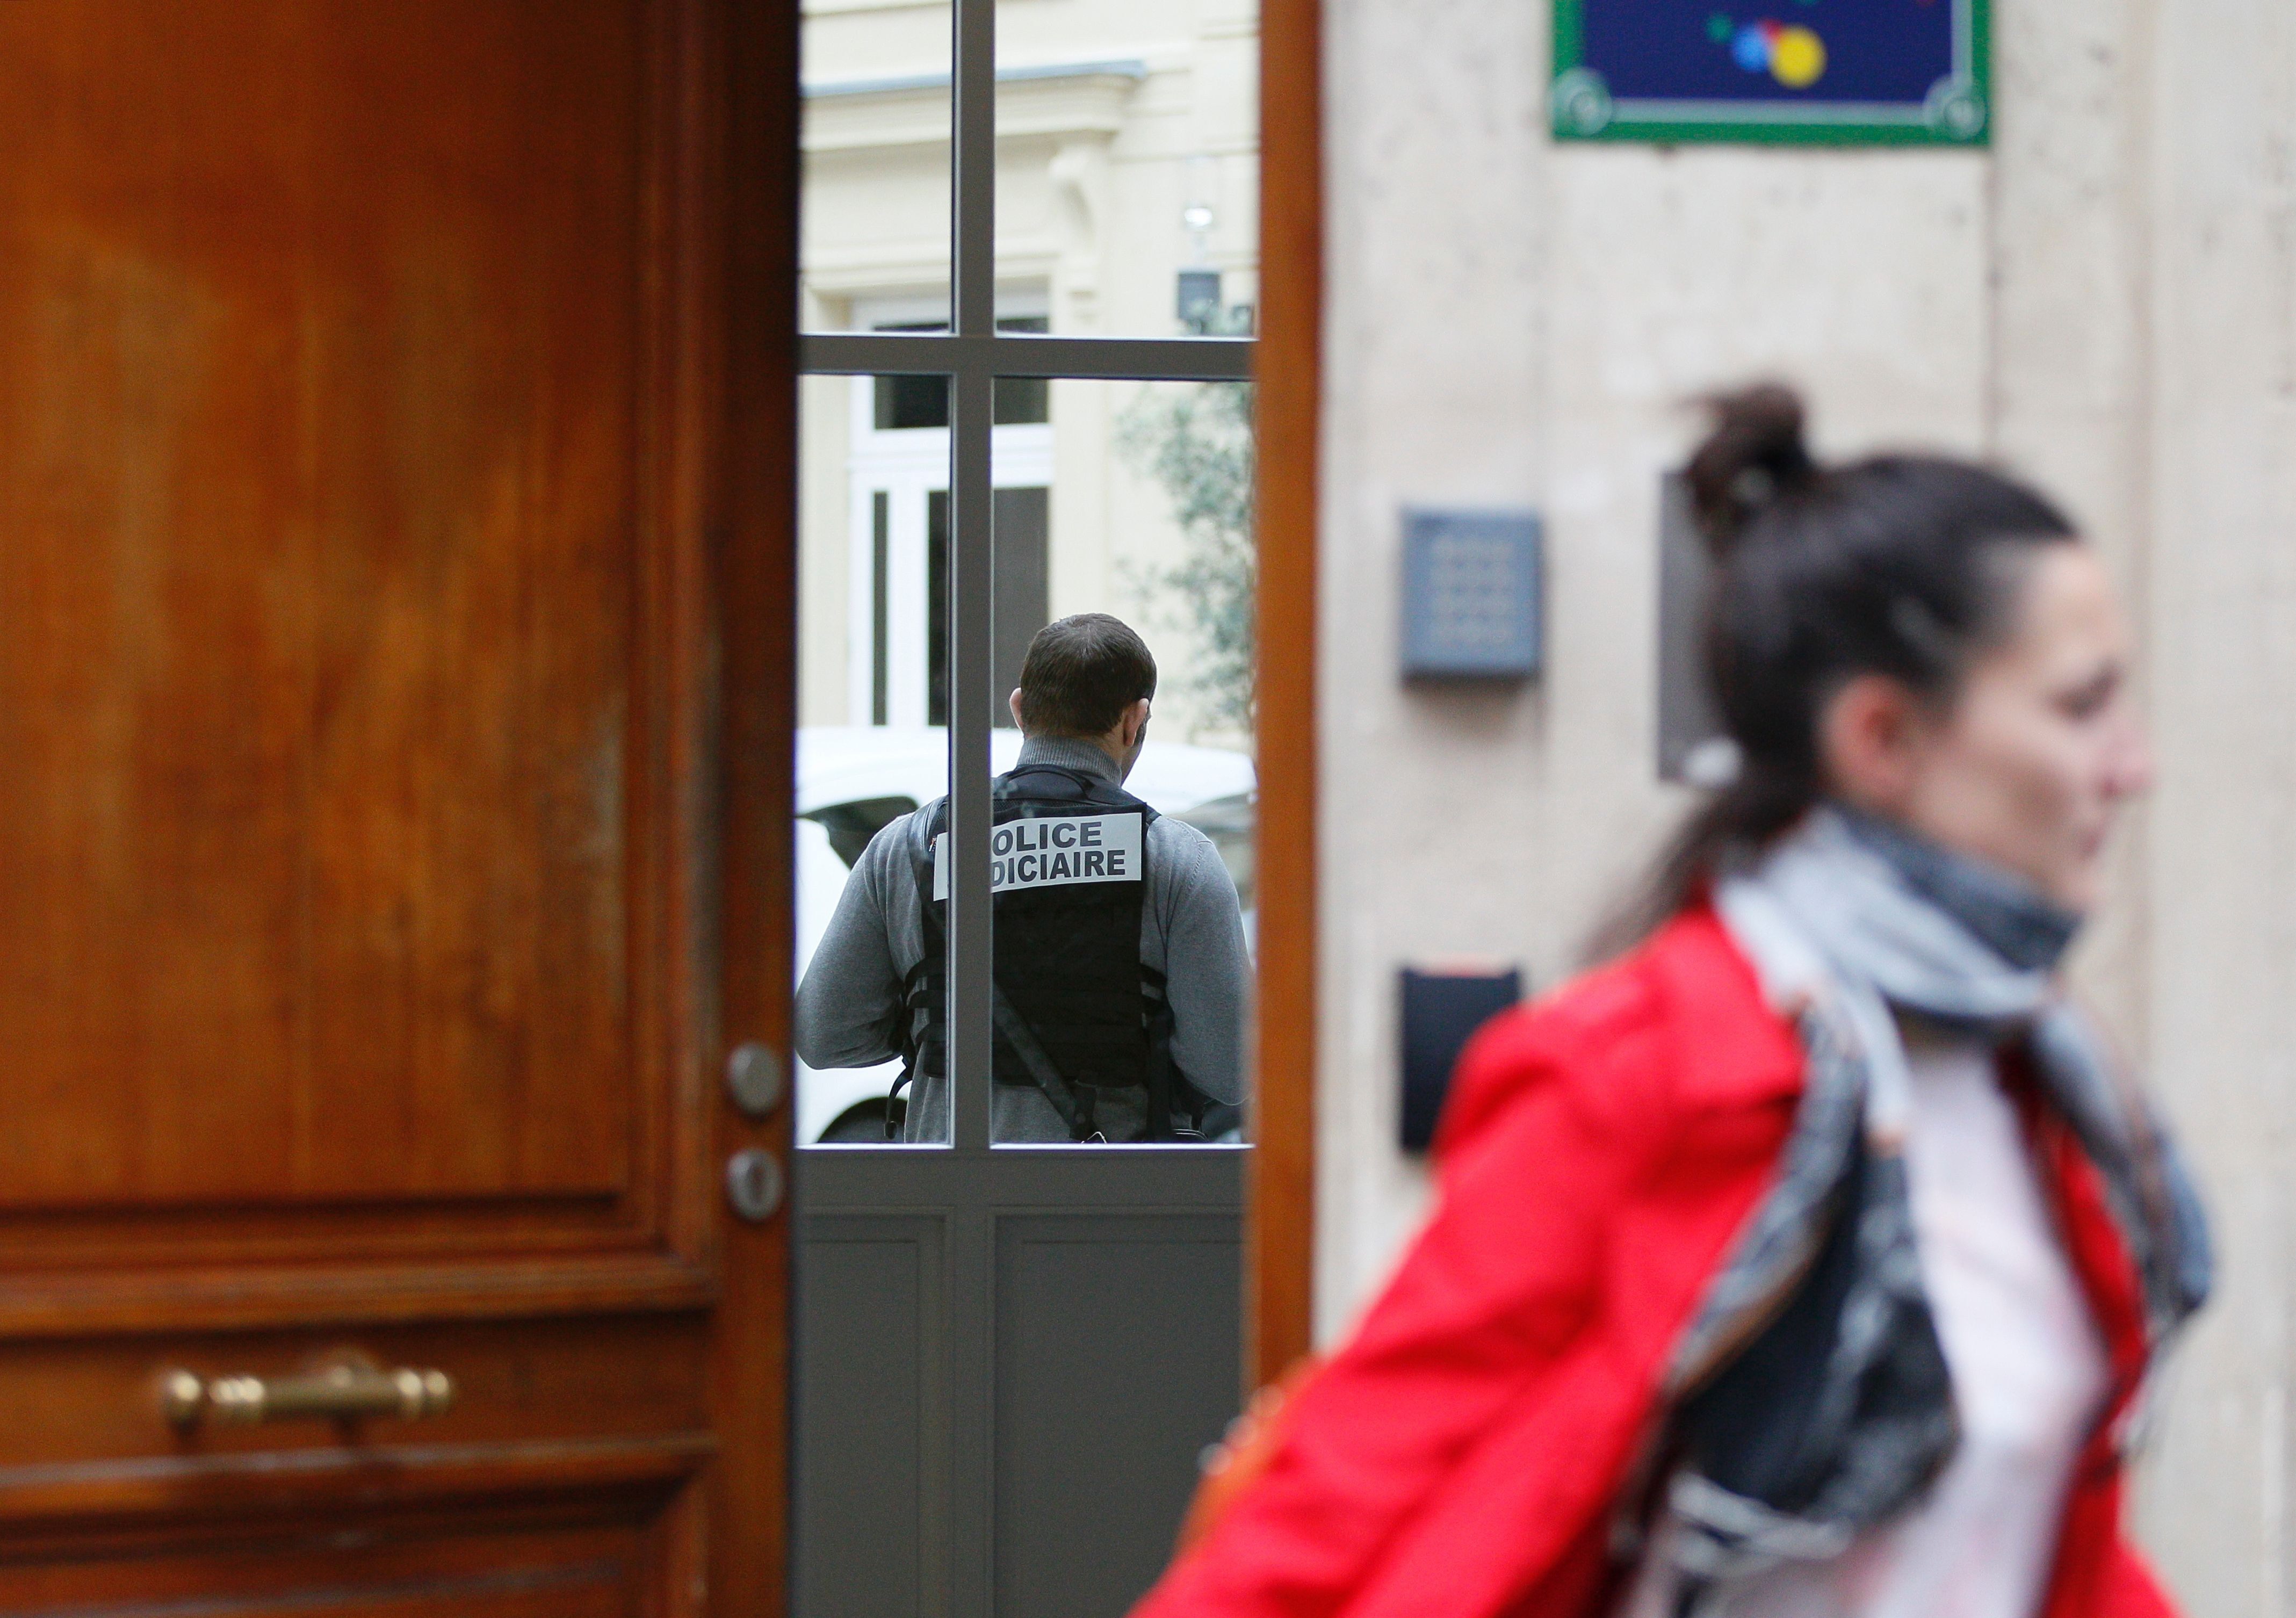 A police officer stands in the Paris offices of Google, as law enforcement carries out a search as part of a tax fraud investigation.